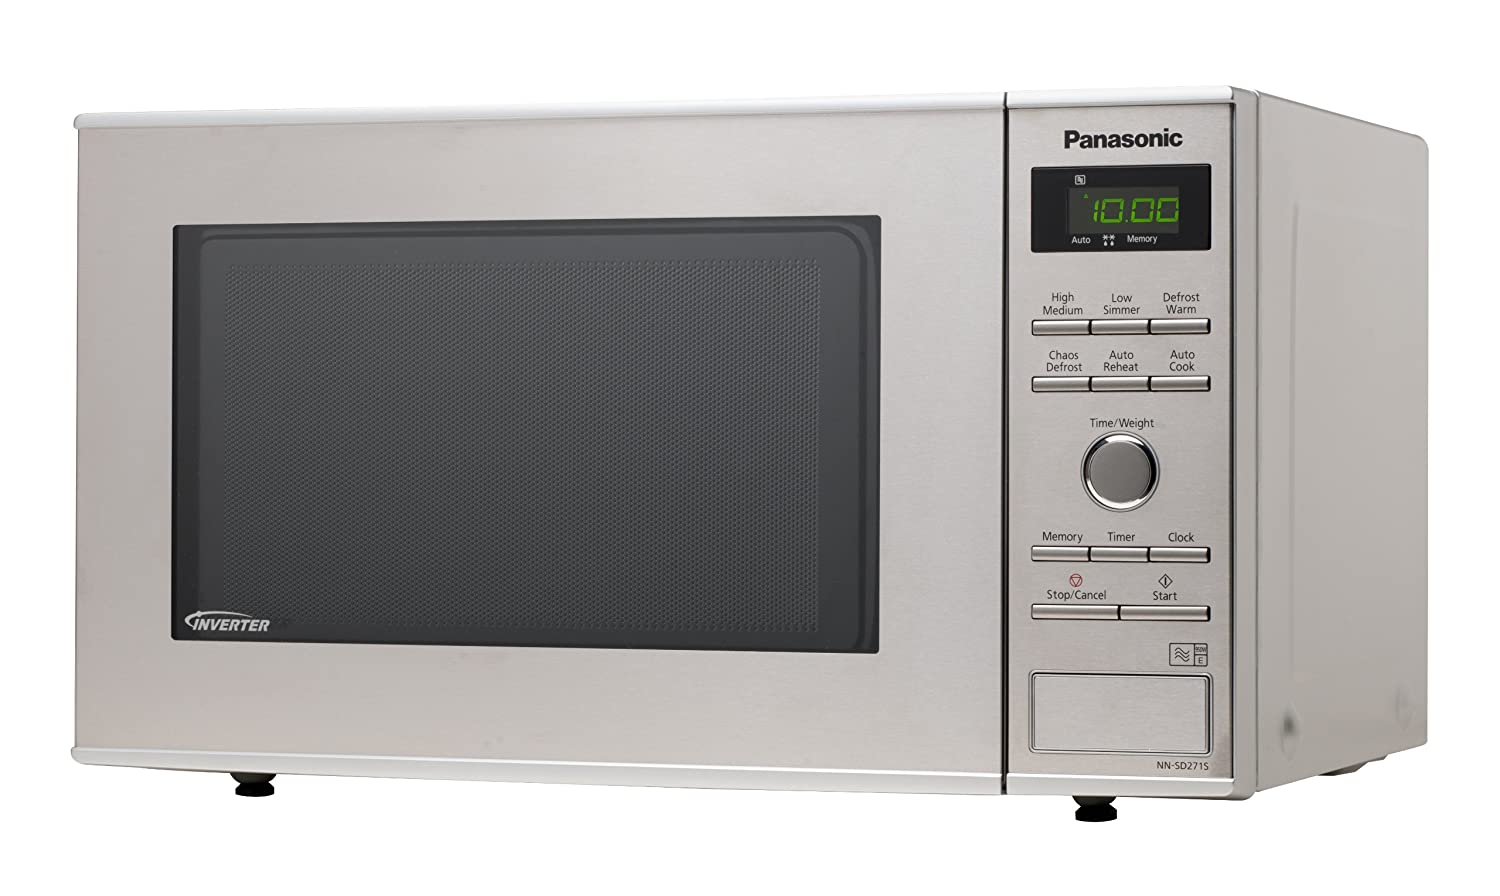 microwave stainless b m goodmans products interior steel kitchen appliances